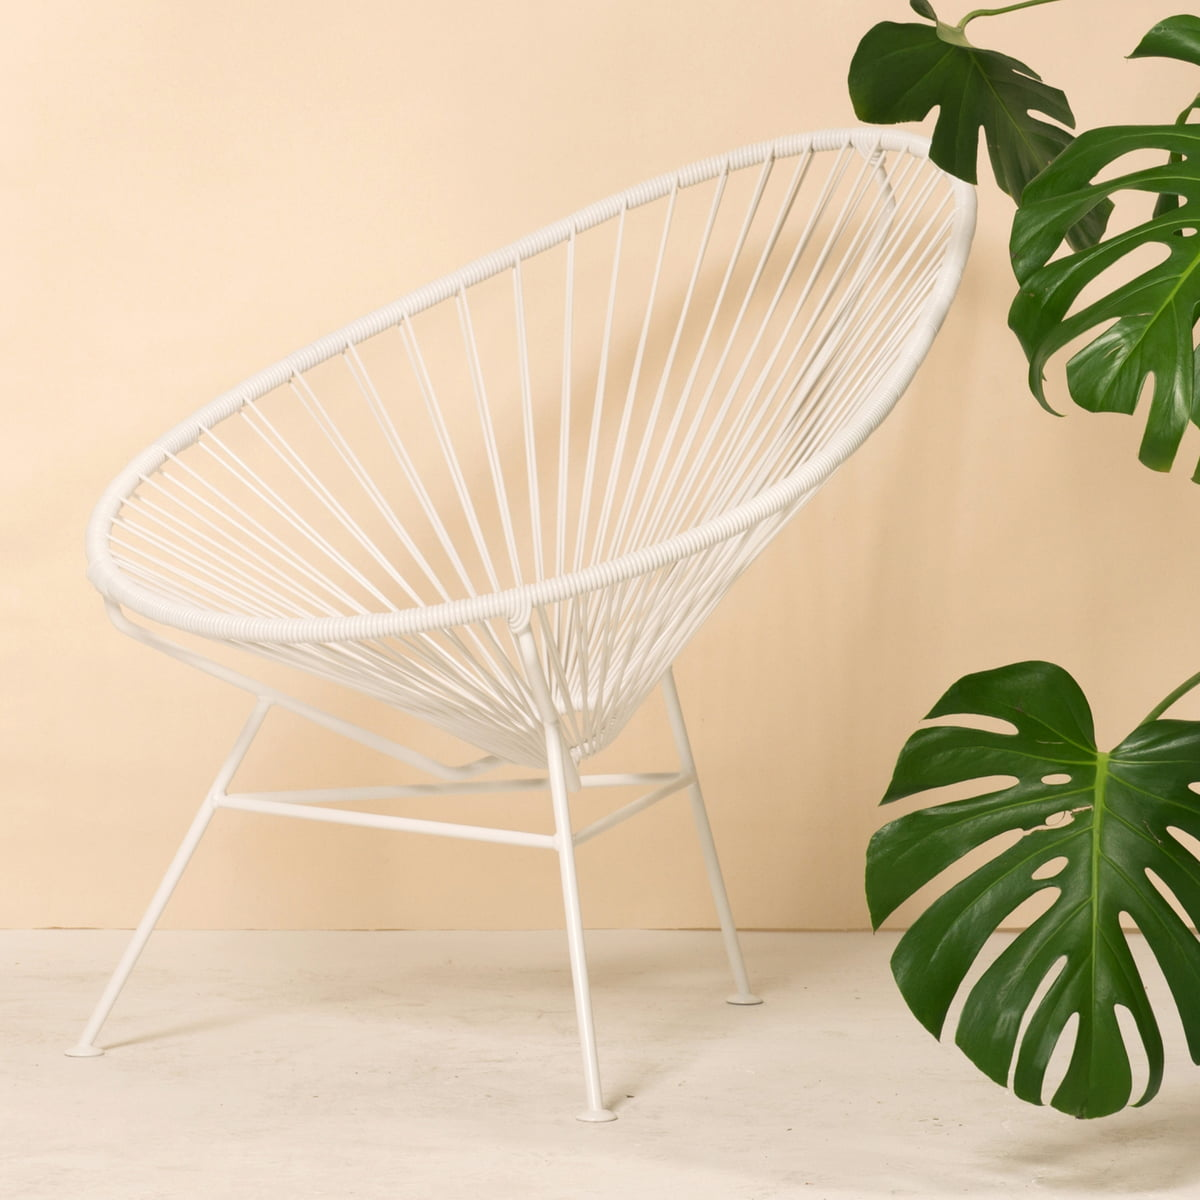 Acapulco all white von ok design im shop for Acapulco chair stuhl ok design